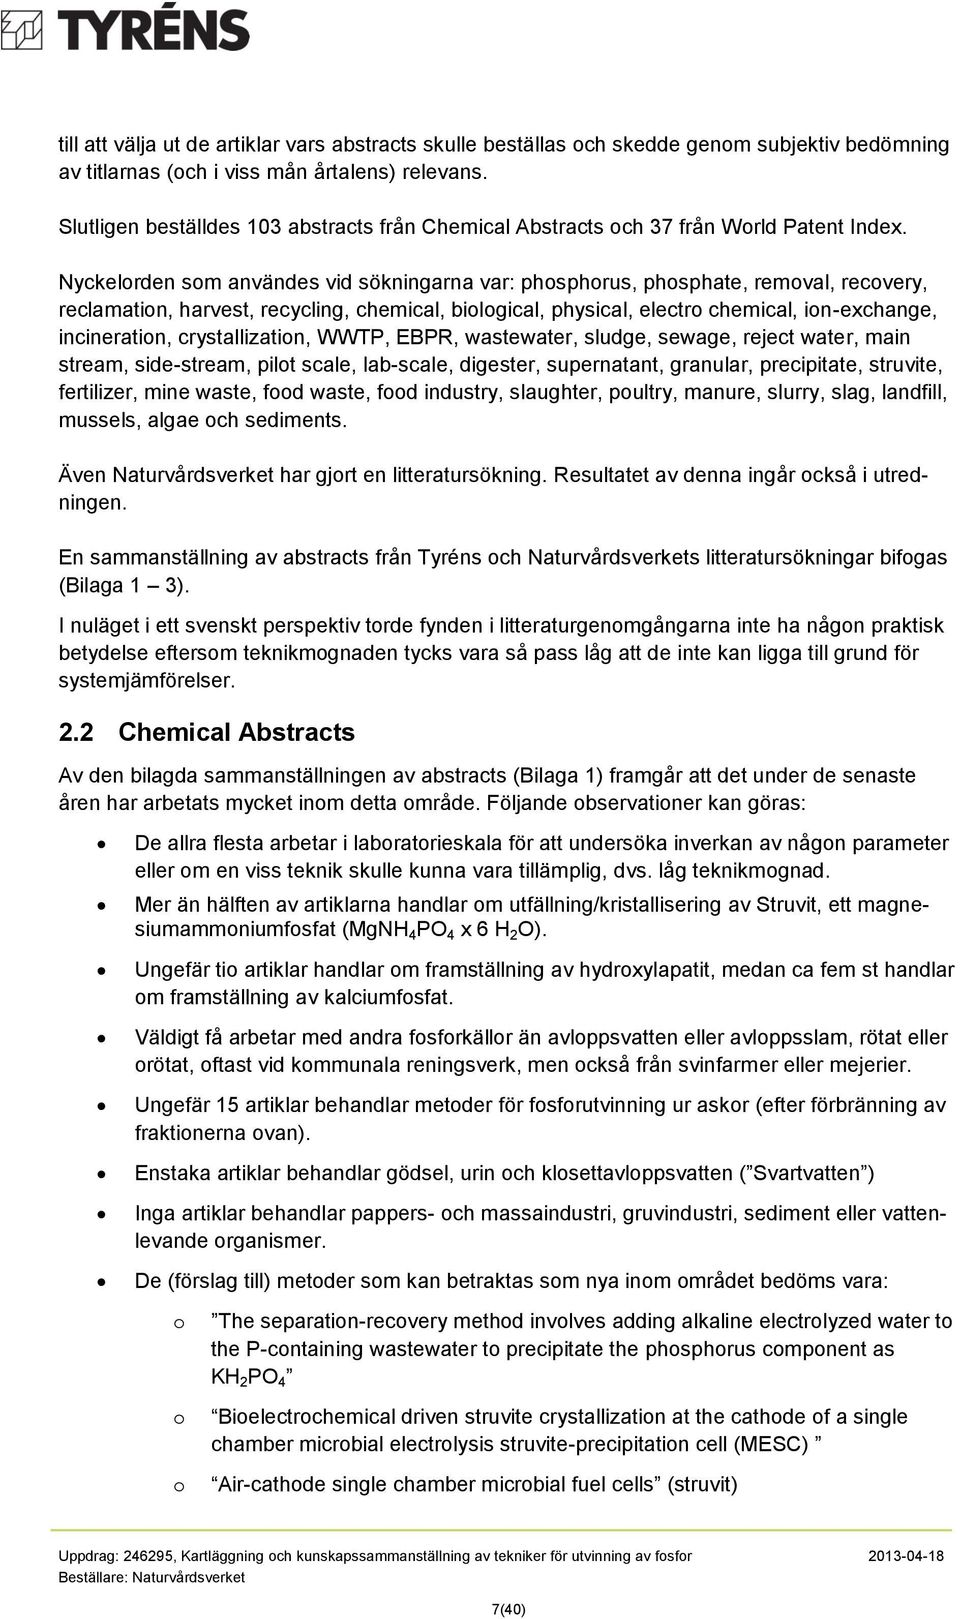 Nyckelrden sm användes vid sökningarna var: phsphrus, phsphate, remval, recvery, reclamatin, harvest, recycling, chemical, bilgical, physical, electr chemical, in-exchange, incineratin,